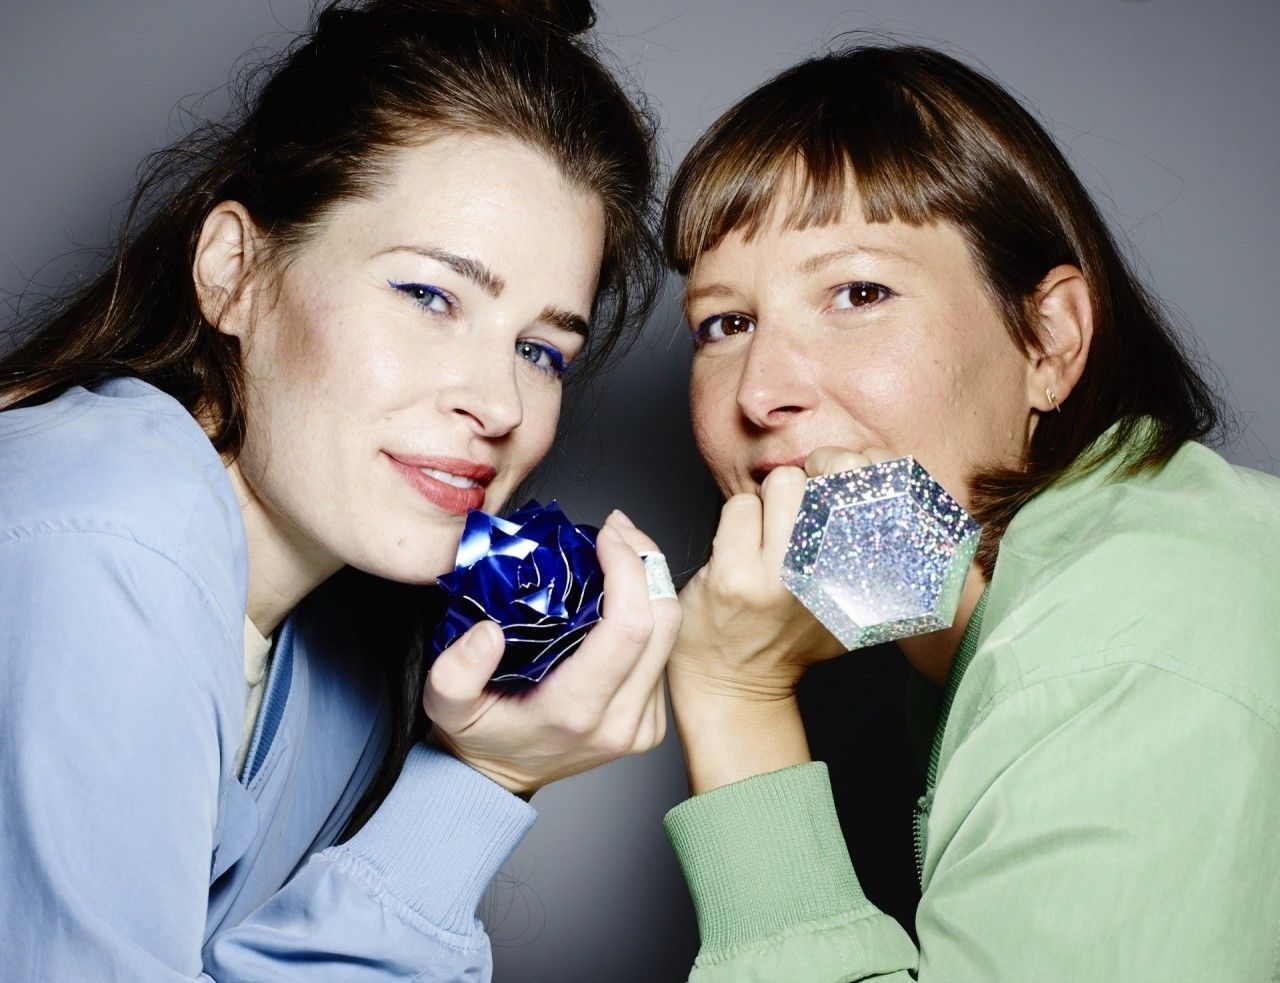 COSMOPOLA   Cris Wiegandt & Lacy Barry for CANVAS BAR BOMBAY SAPPHIRE